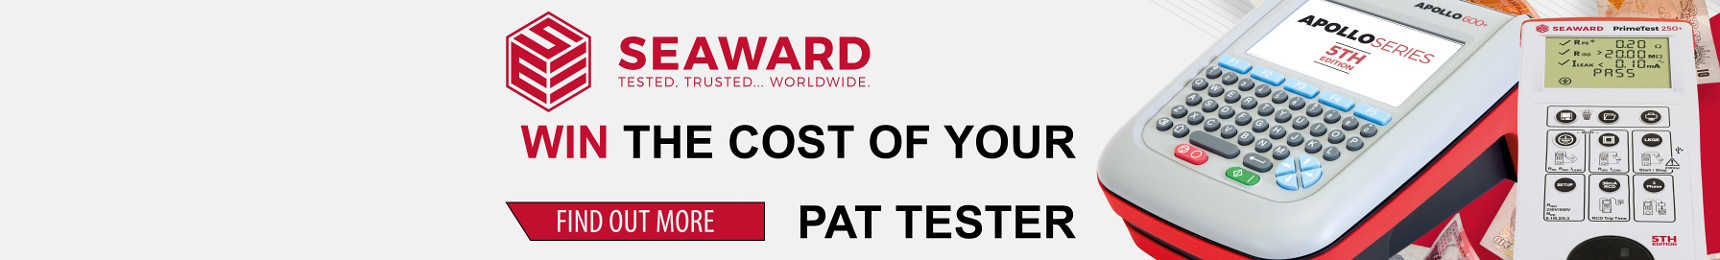 Seaward WIN the cost of your PAT Tester